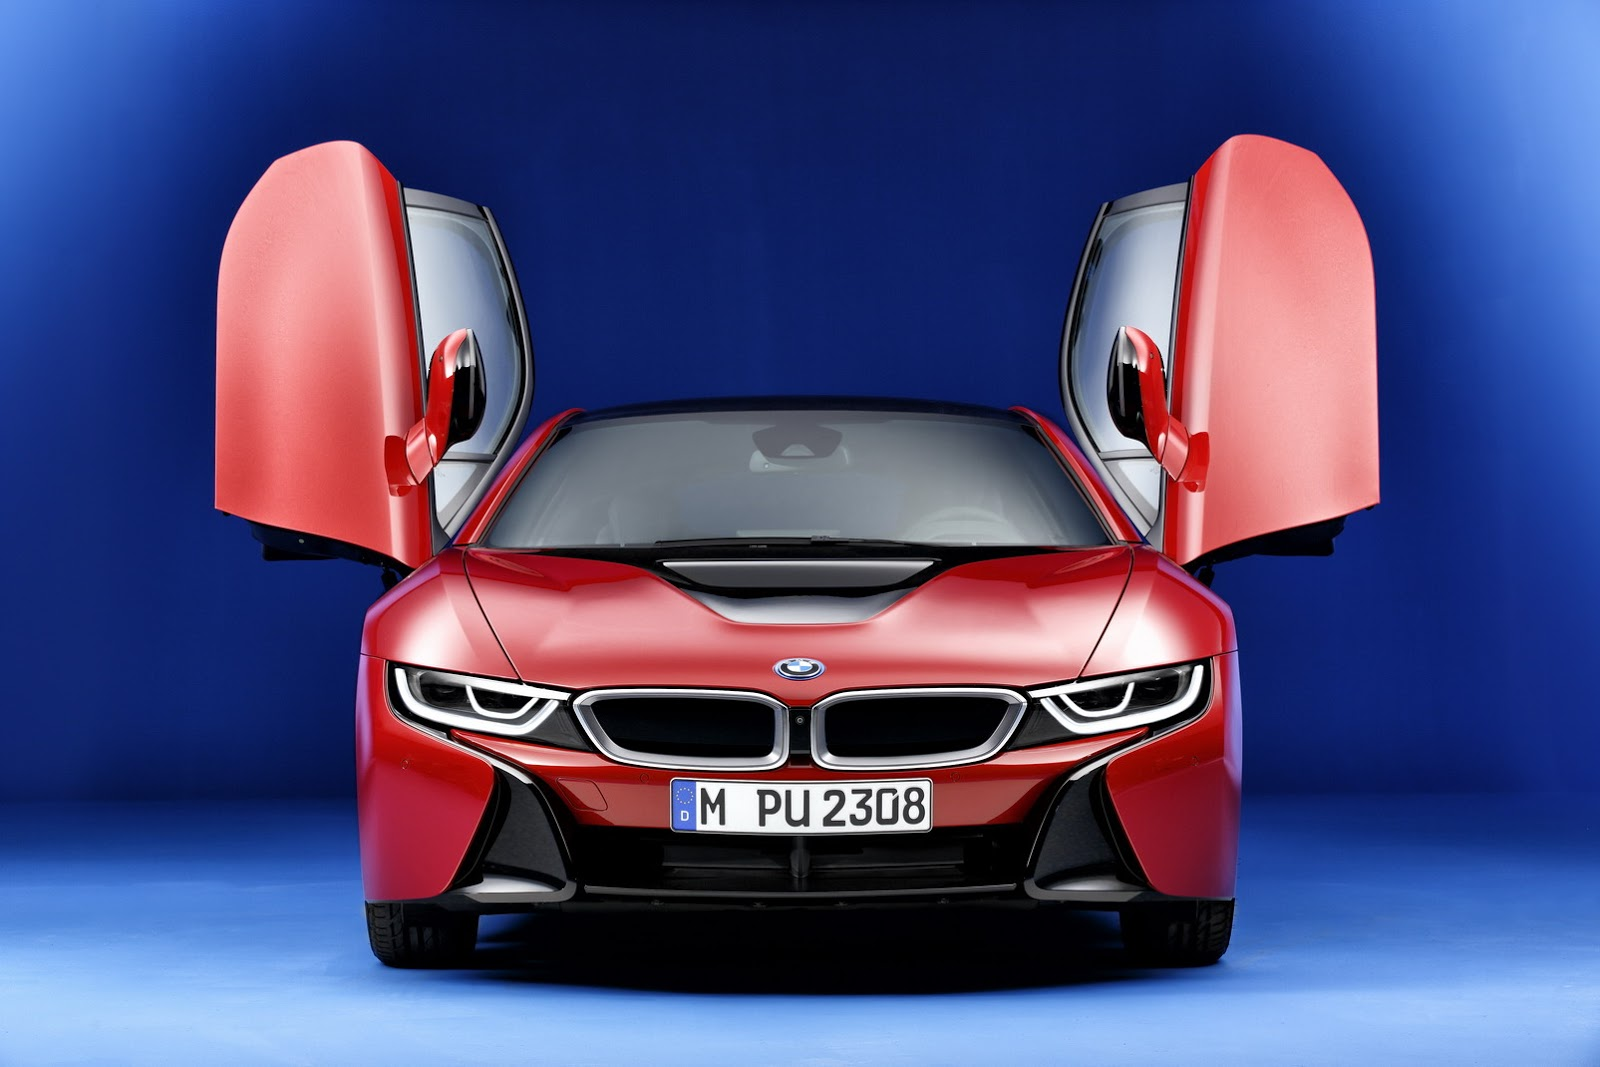 New car colors 2016 - Photo Gallery